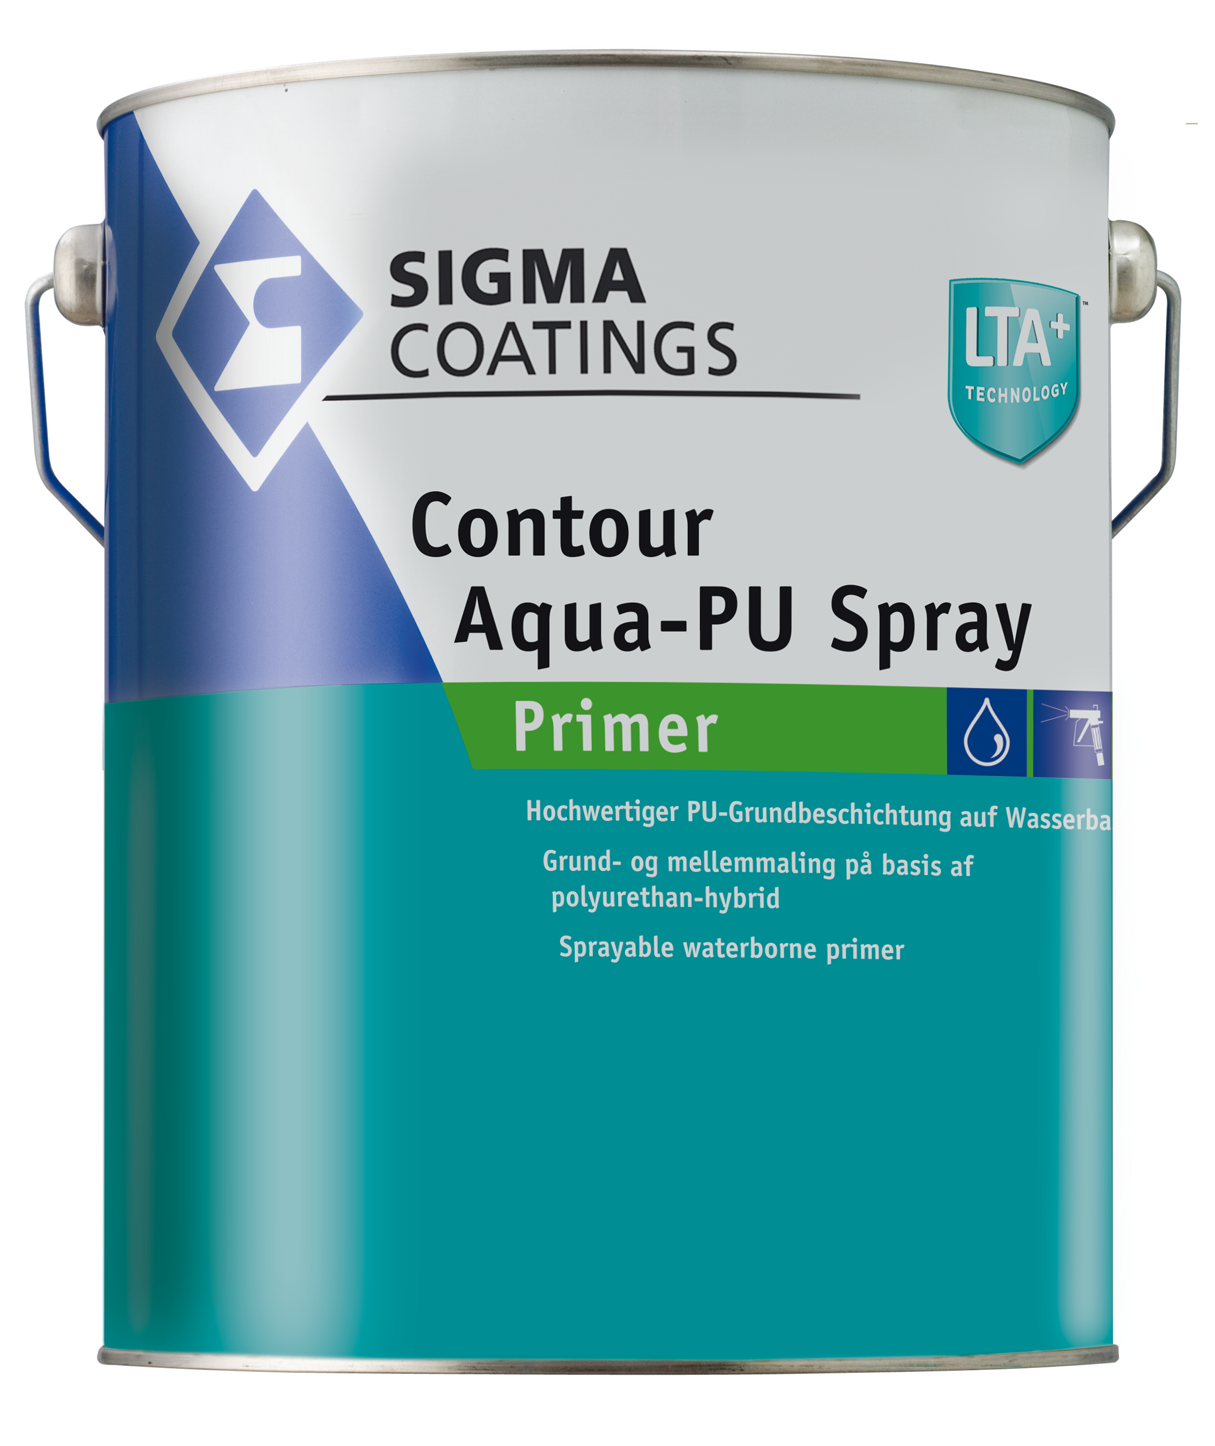 Contour Aqua-PU Spray